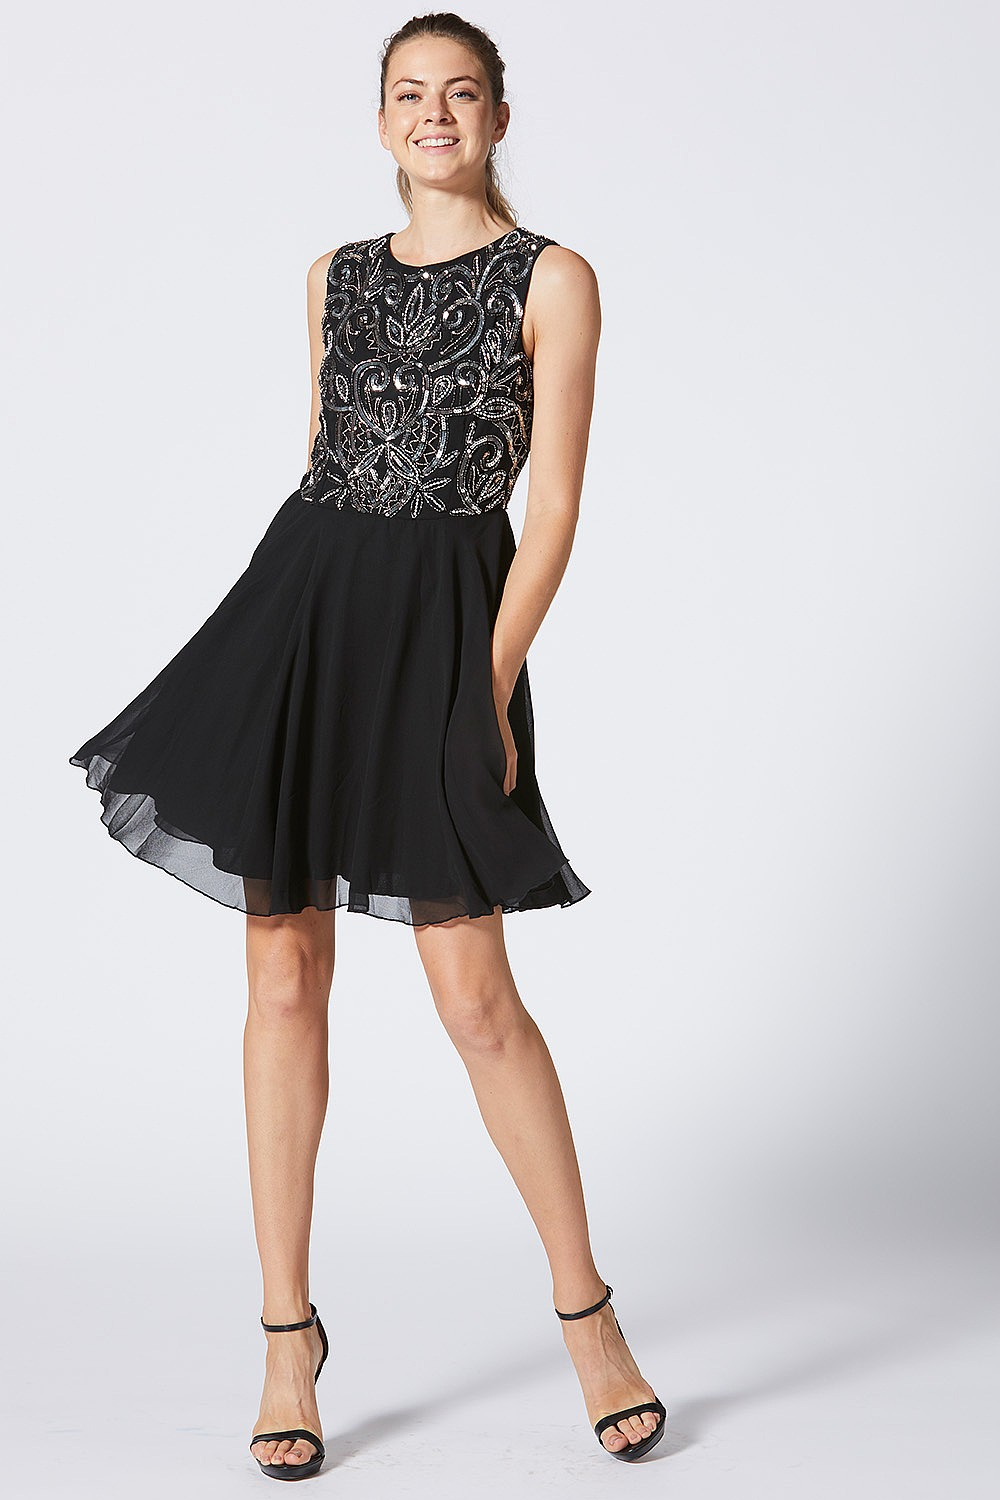 87753d4fcd1 Black Dress with Embellished Bodice and Chiffon Skirt